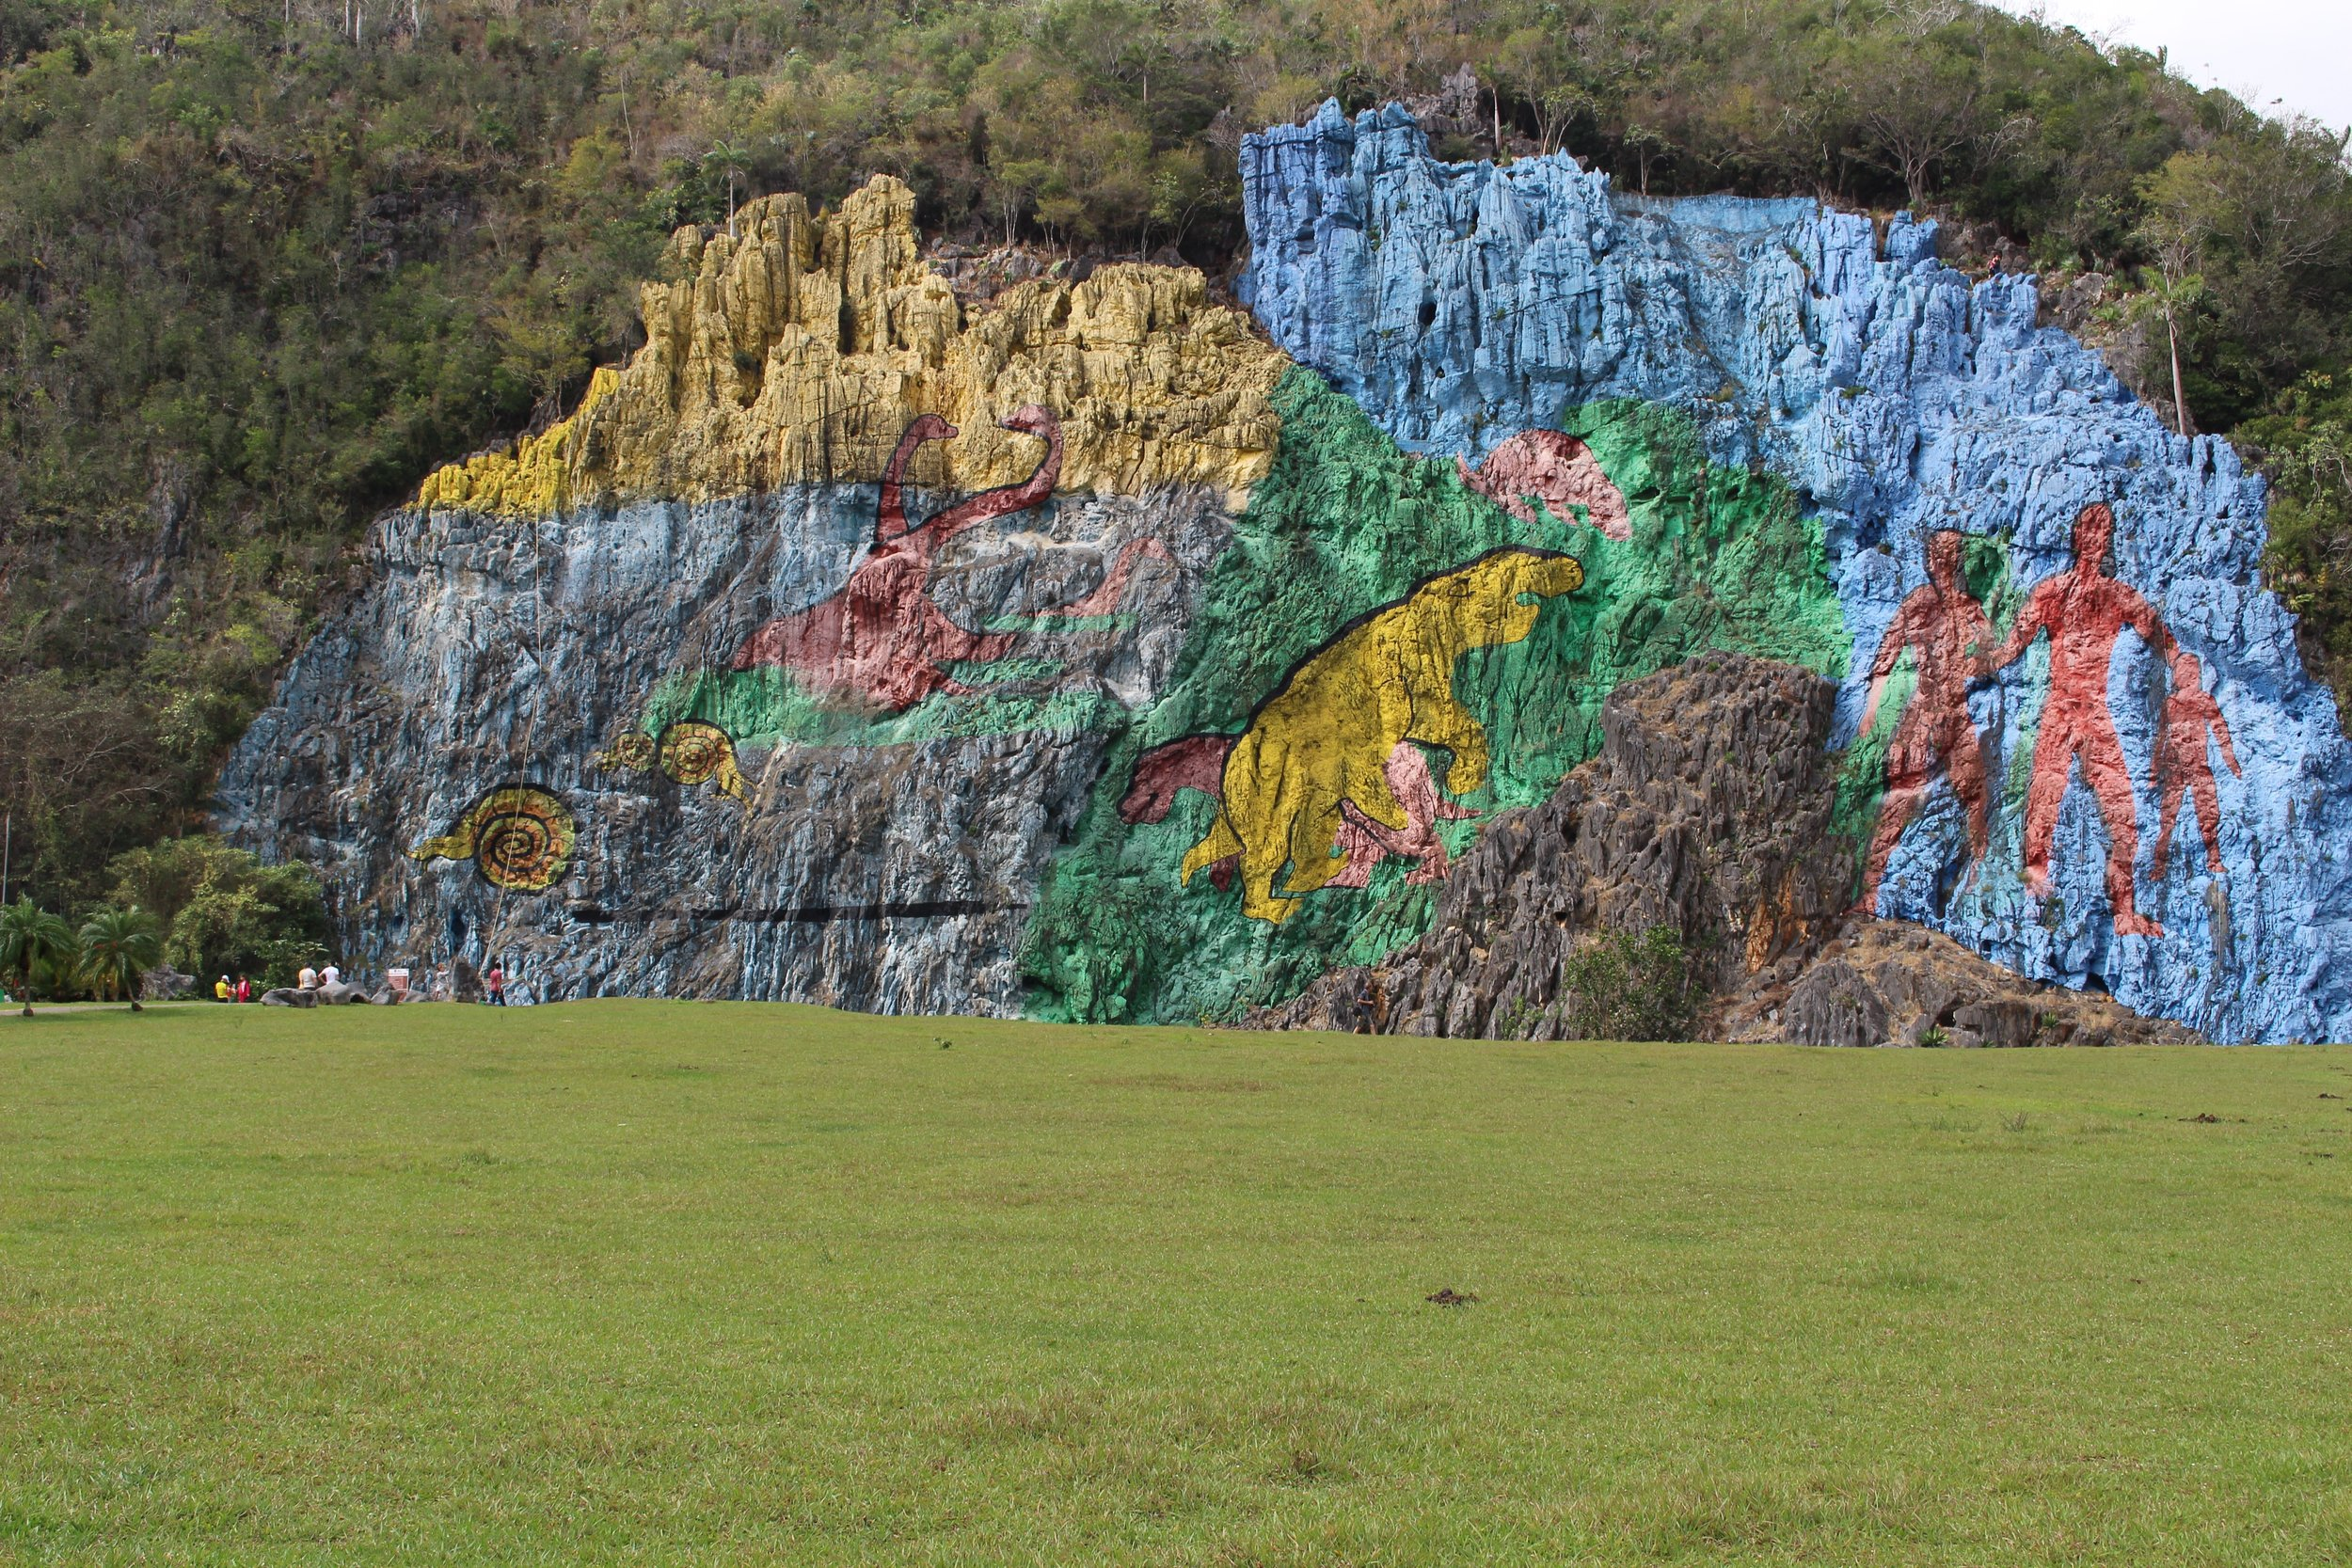 The Mural de Prehistoria is 120m long and was designed in 1961 by an artist named Leovigildo González Morillo.